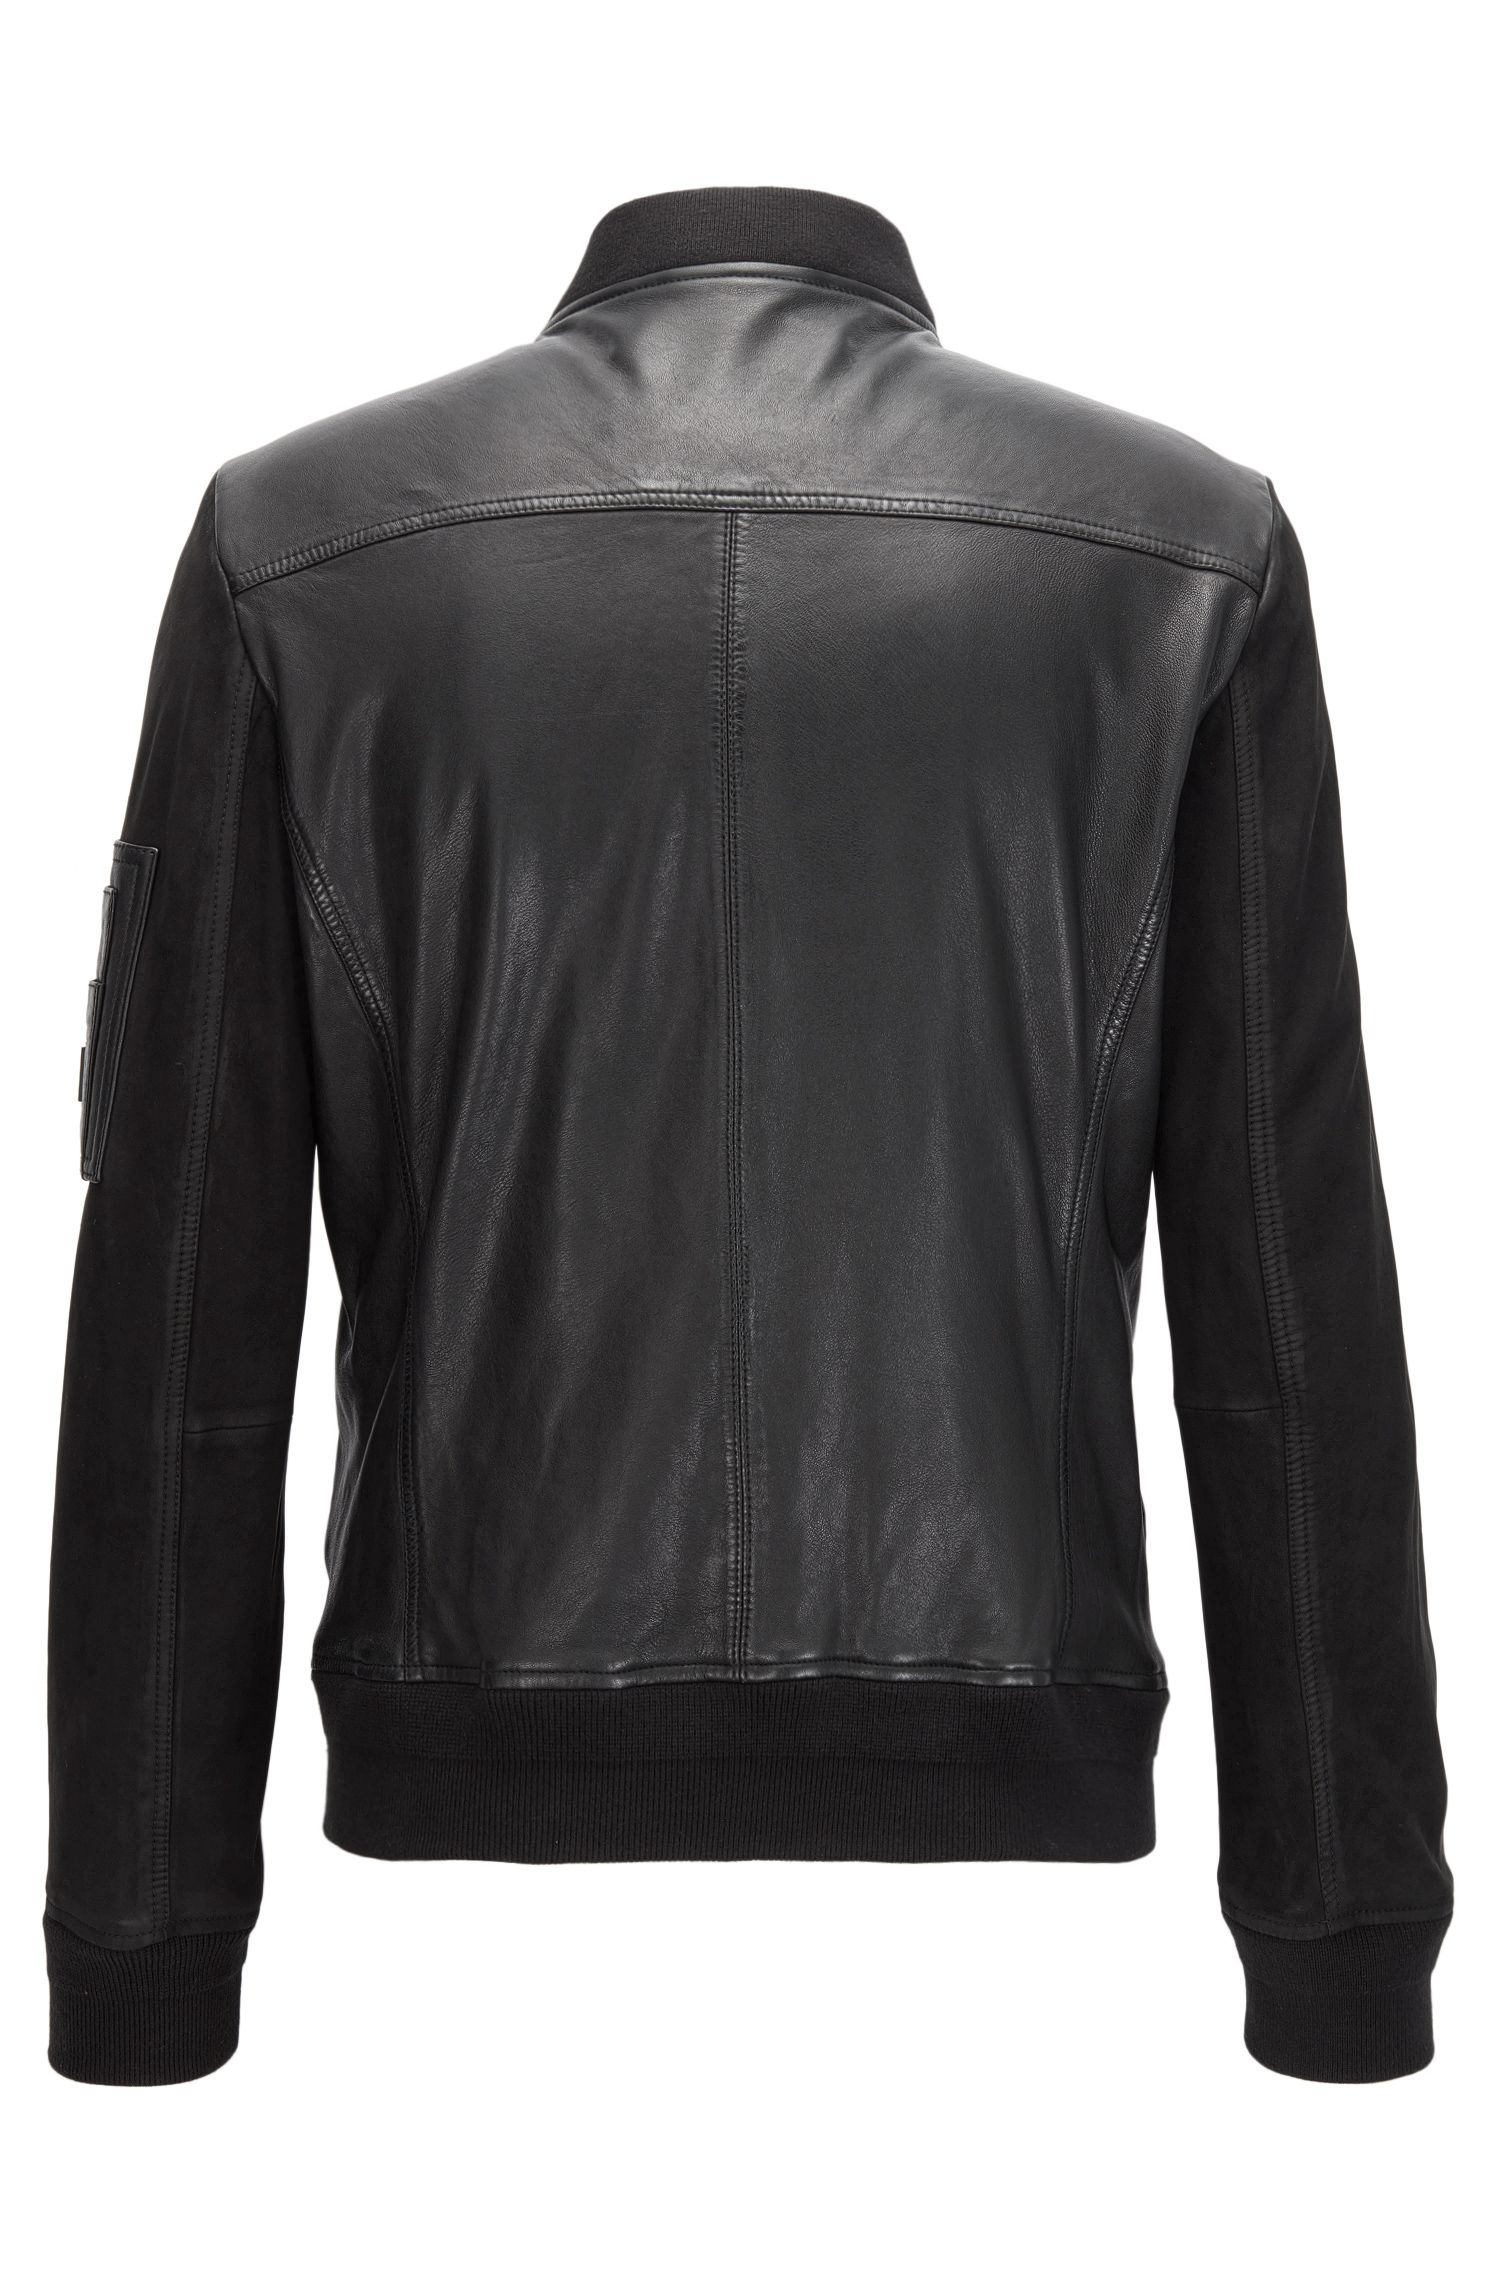 MA-1 bomber jacket in mixed tonal leather